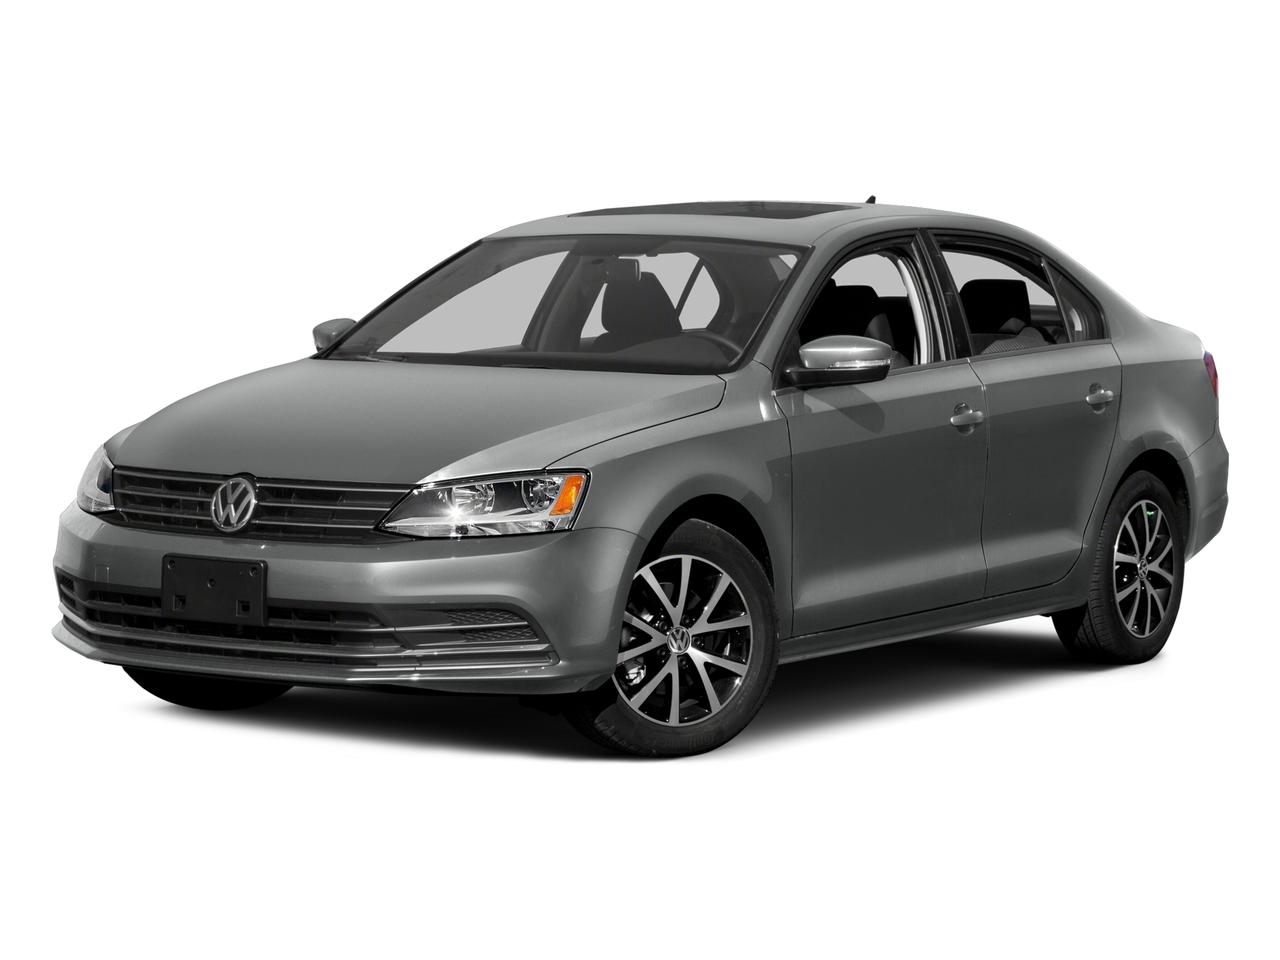 2015 Volkswagen Jetta Sedan Vehicle Photo in Allentown, PA 18103